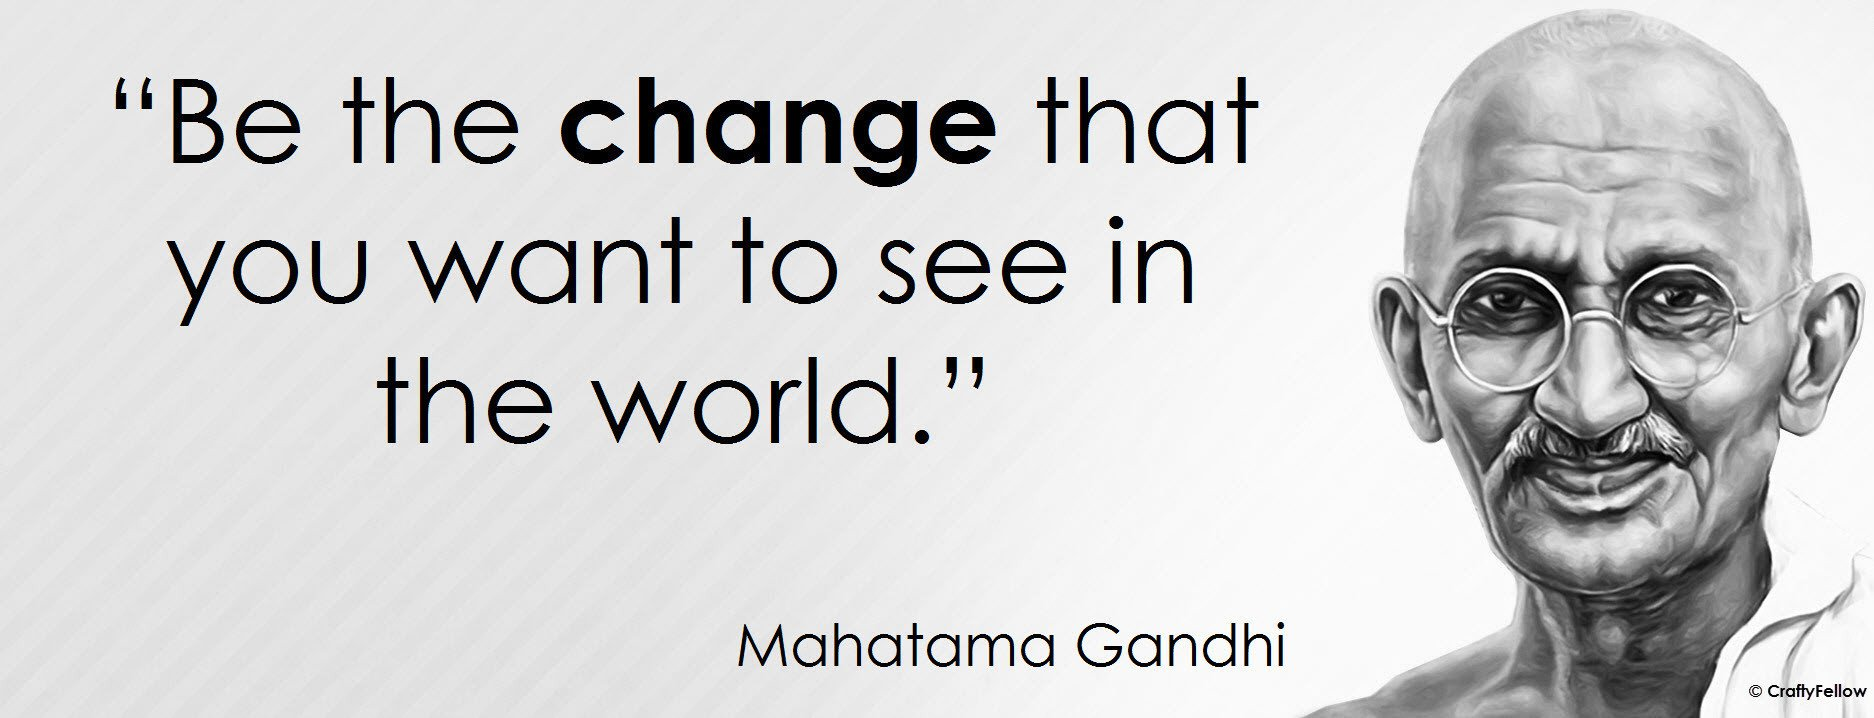 be the change mahatma gandhi quotes quotesgram